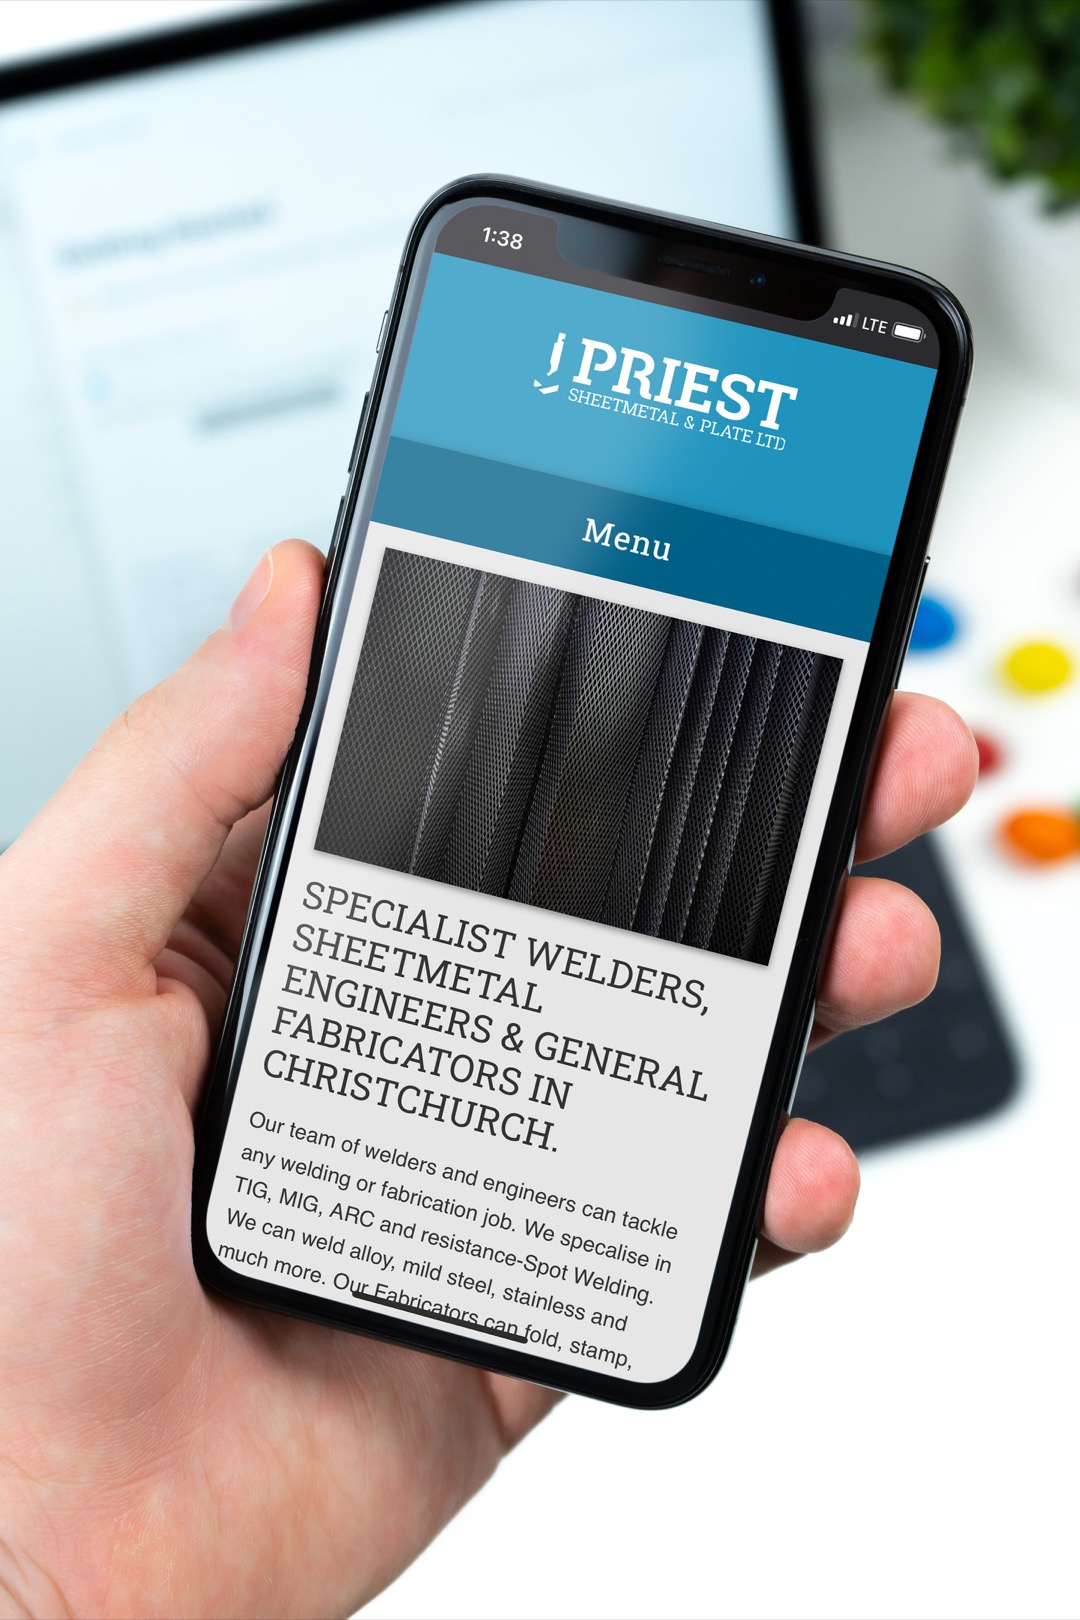 priest sheetmetal website running on an iPhone